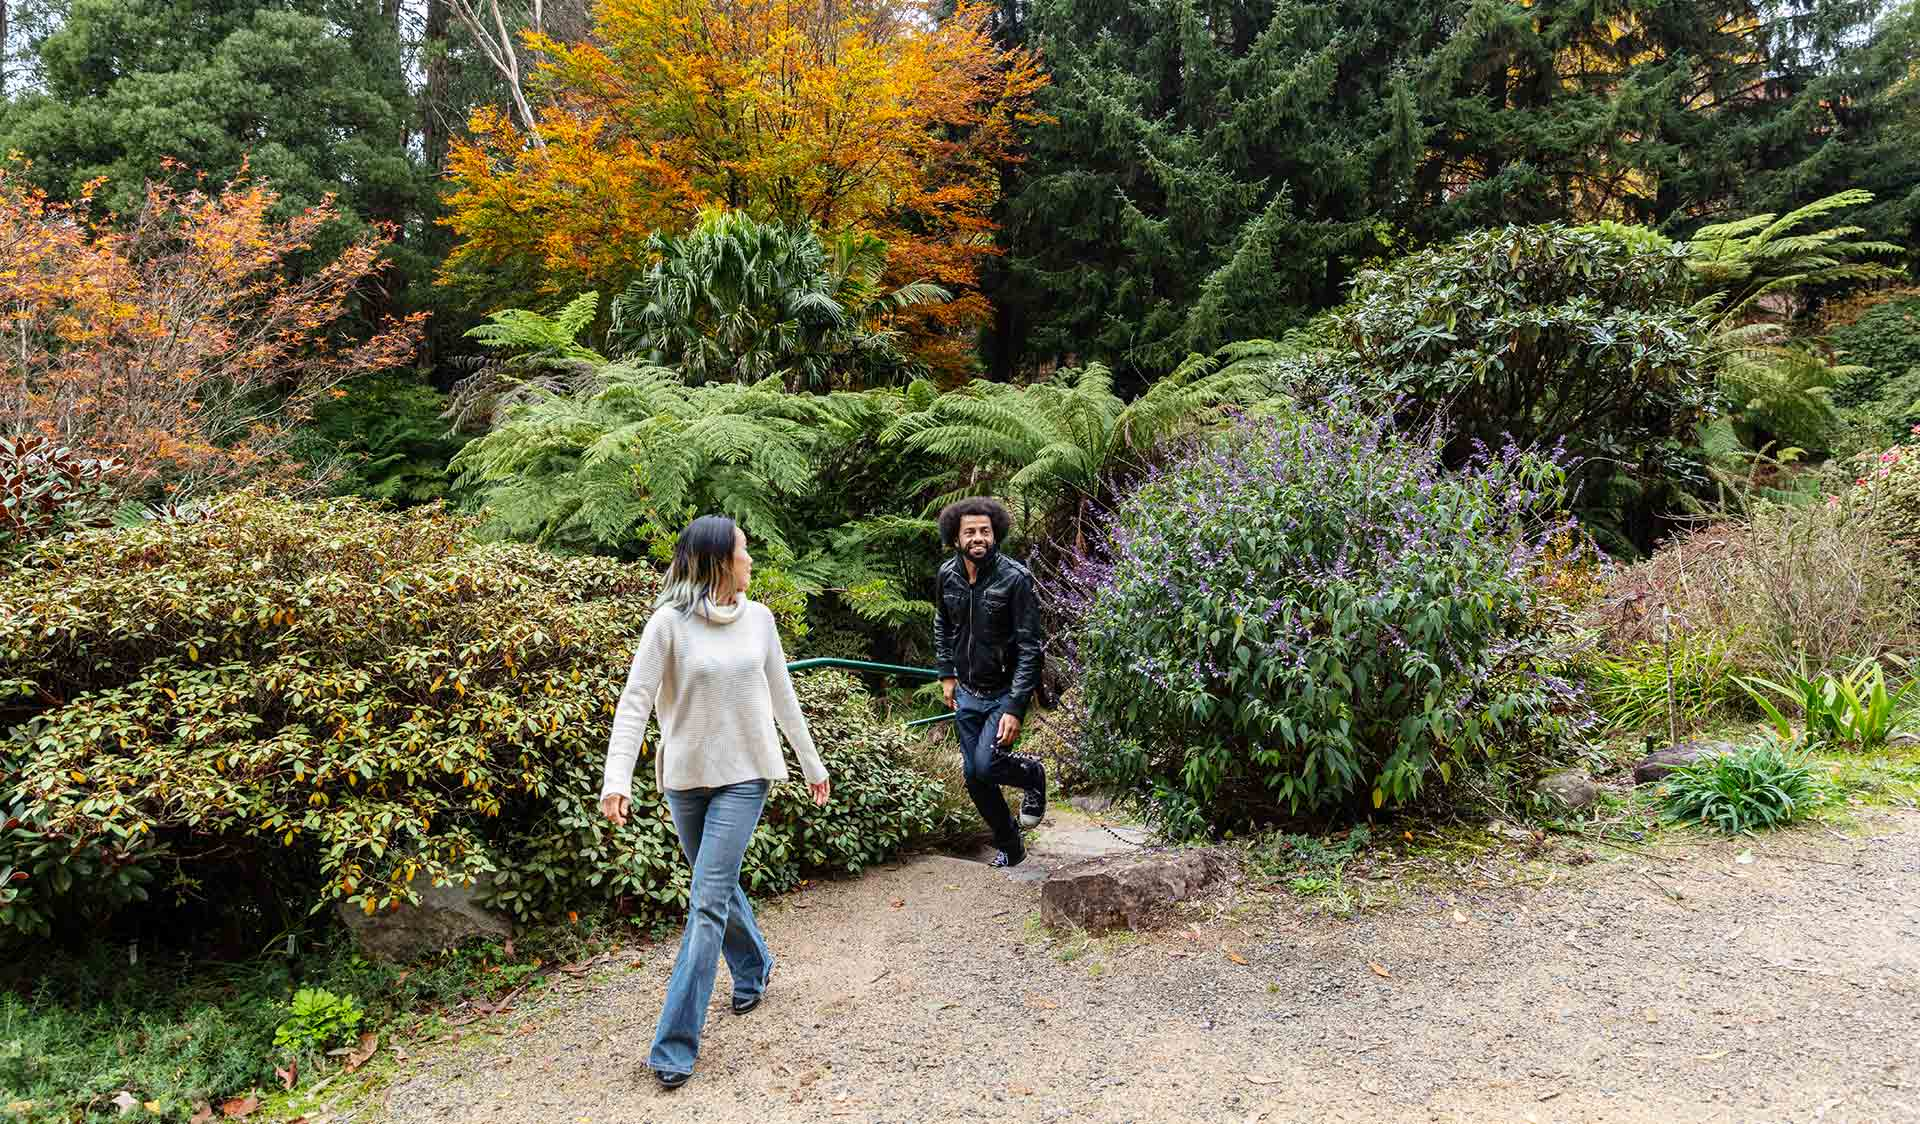 A man with an afro wearing a leather jacket follows a woman wearing a cream knitted jumper up the garden steps and into an opening in the Dandenong Ranges Botanical Gardens.